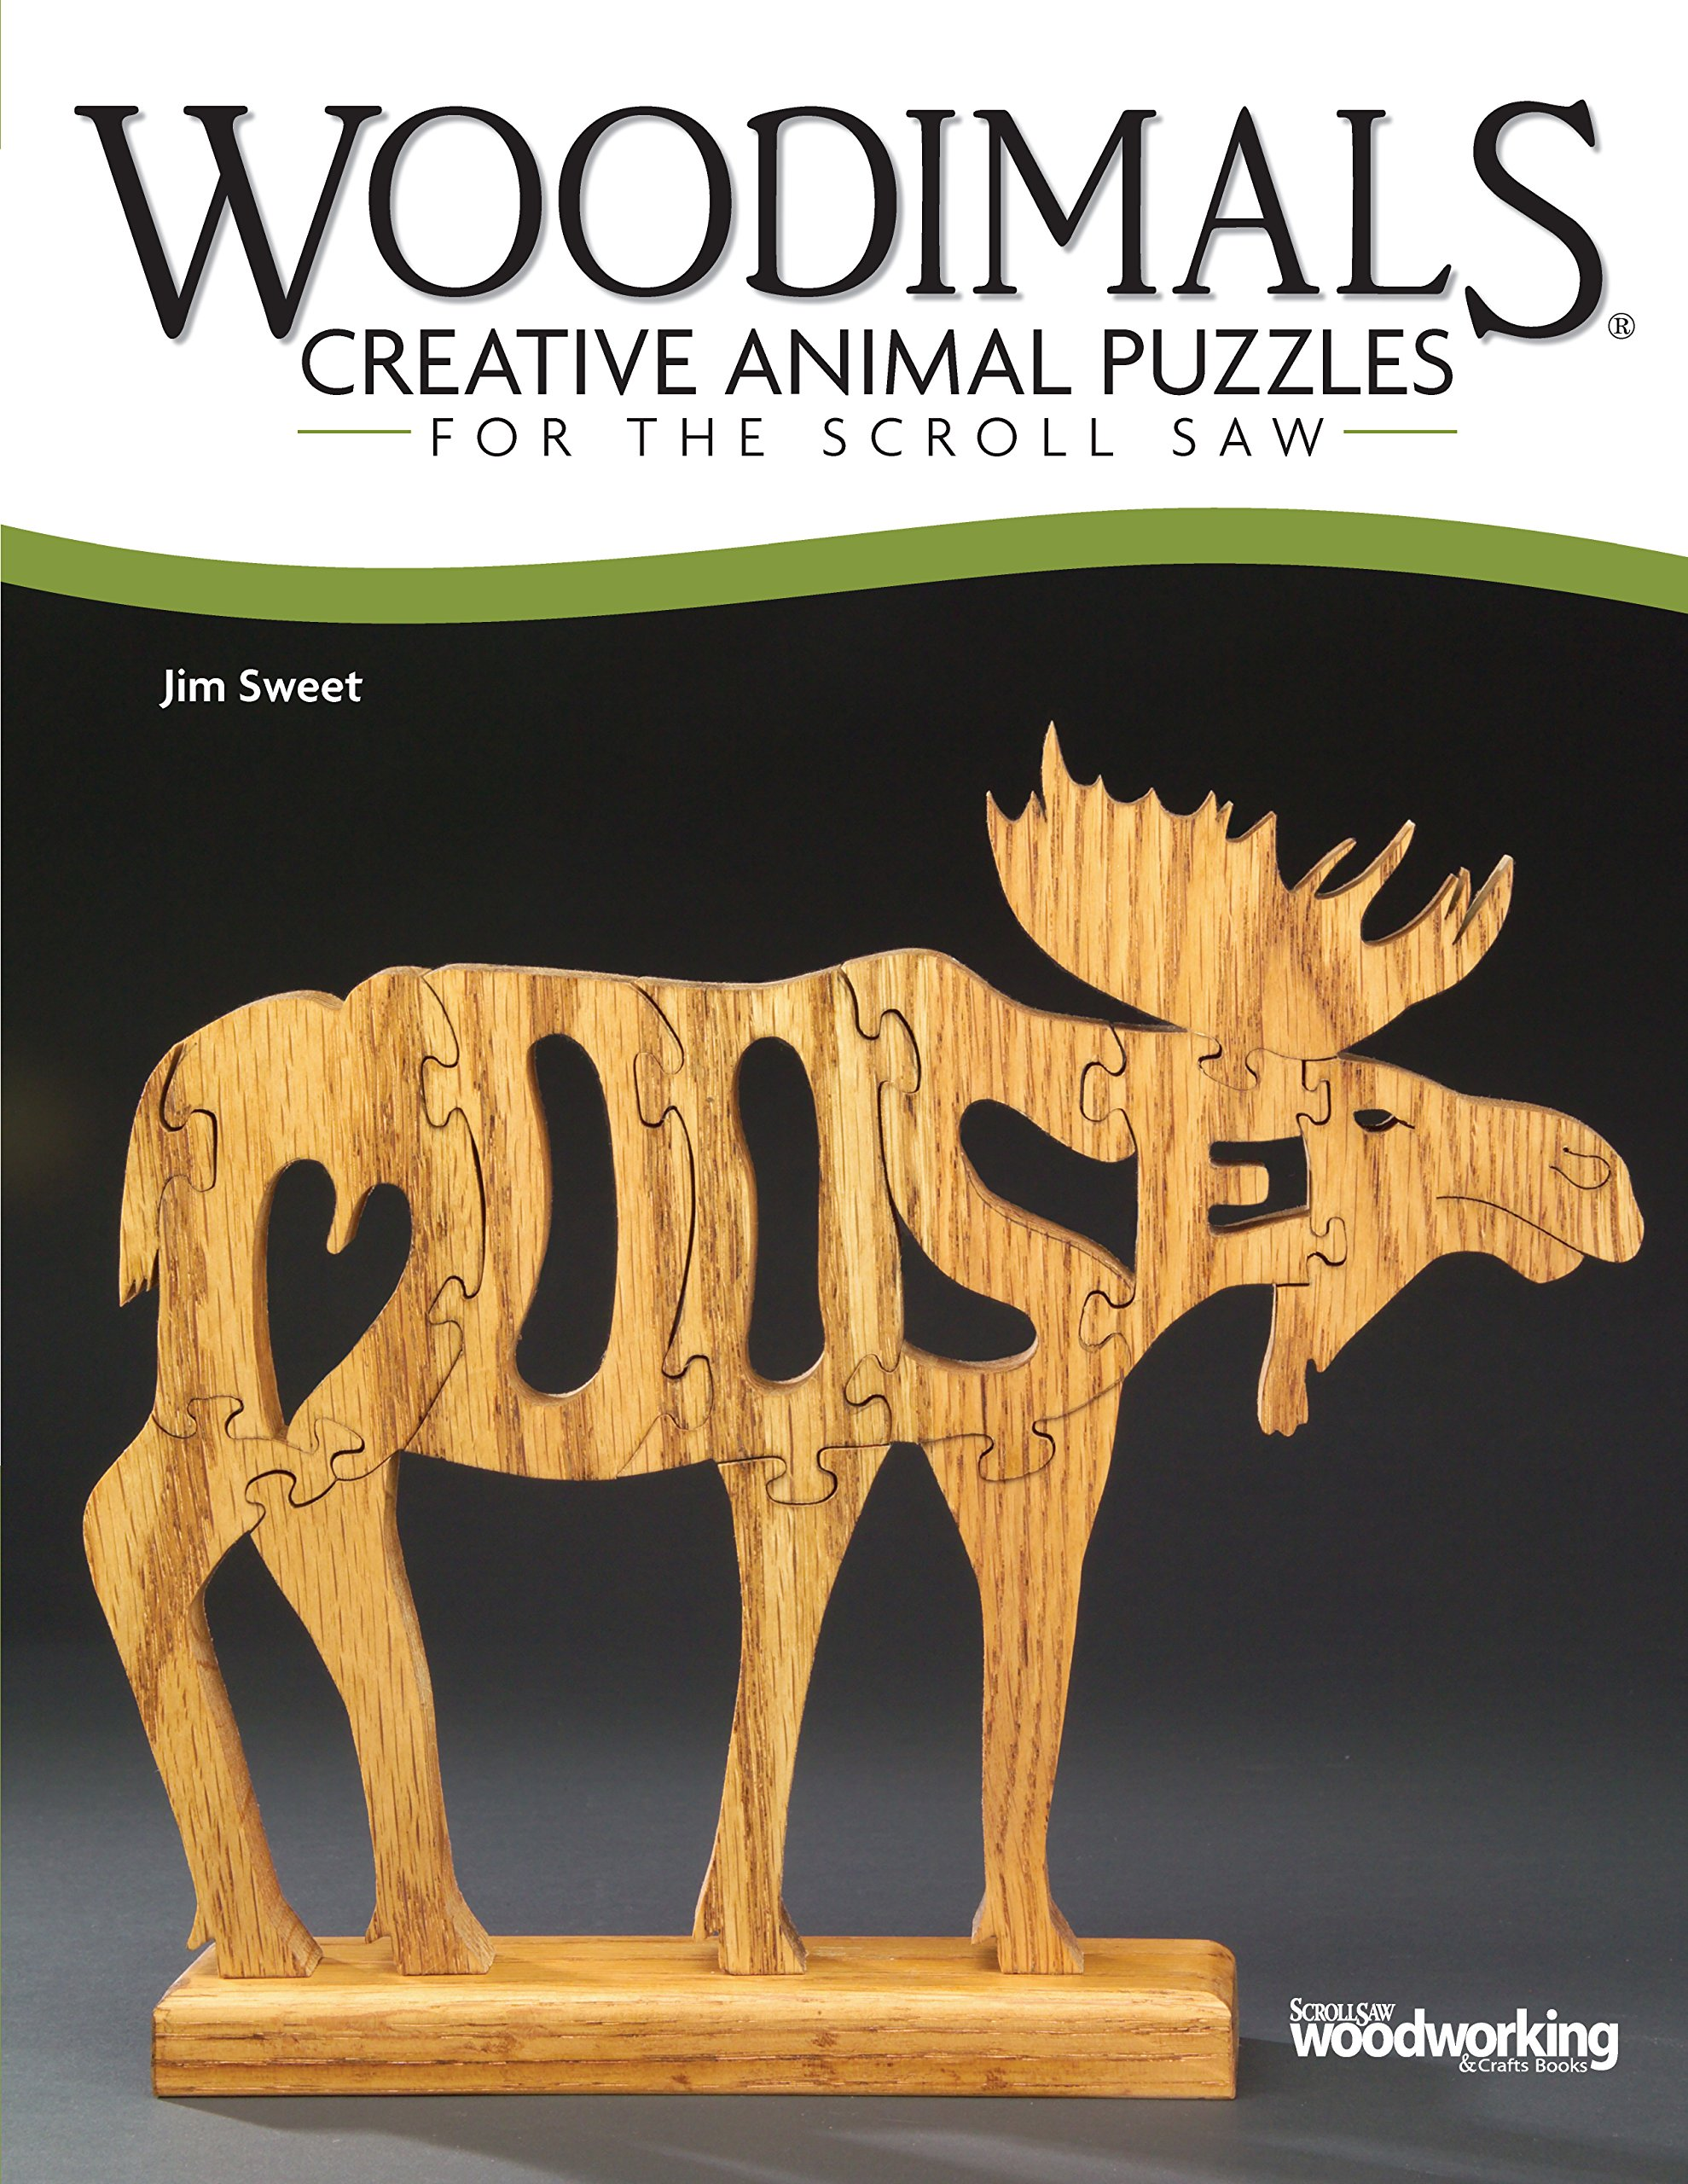 Woodimals: Creative Animal Puzzles for the Scroll Saw (Fox Chapel Publishing) 56 Fun Patterns in the Shape of Animals with the Animal's Name Inside the Design: Lion, Dolphin, Poodle, Owl, & Much More pdf